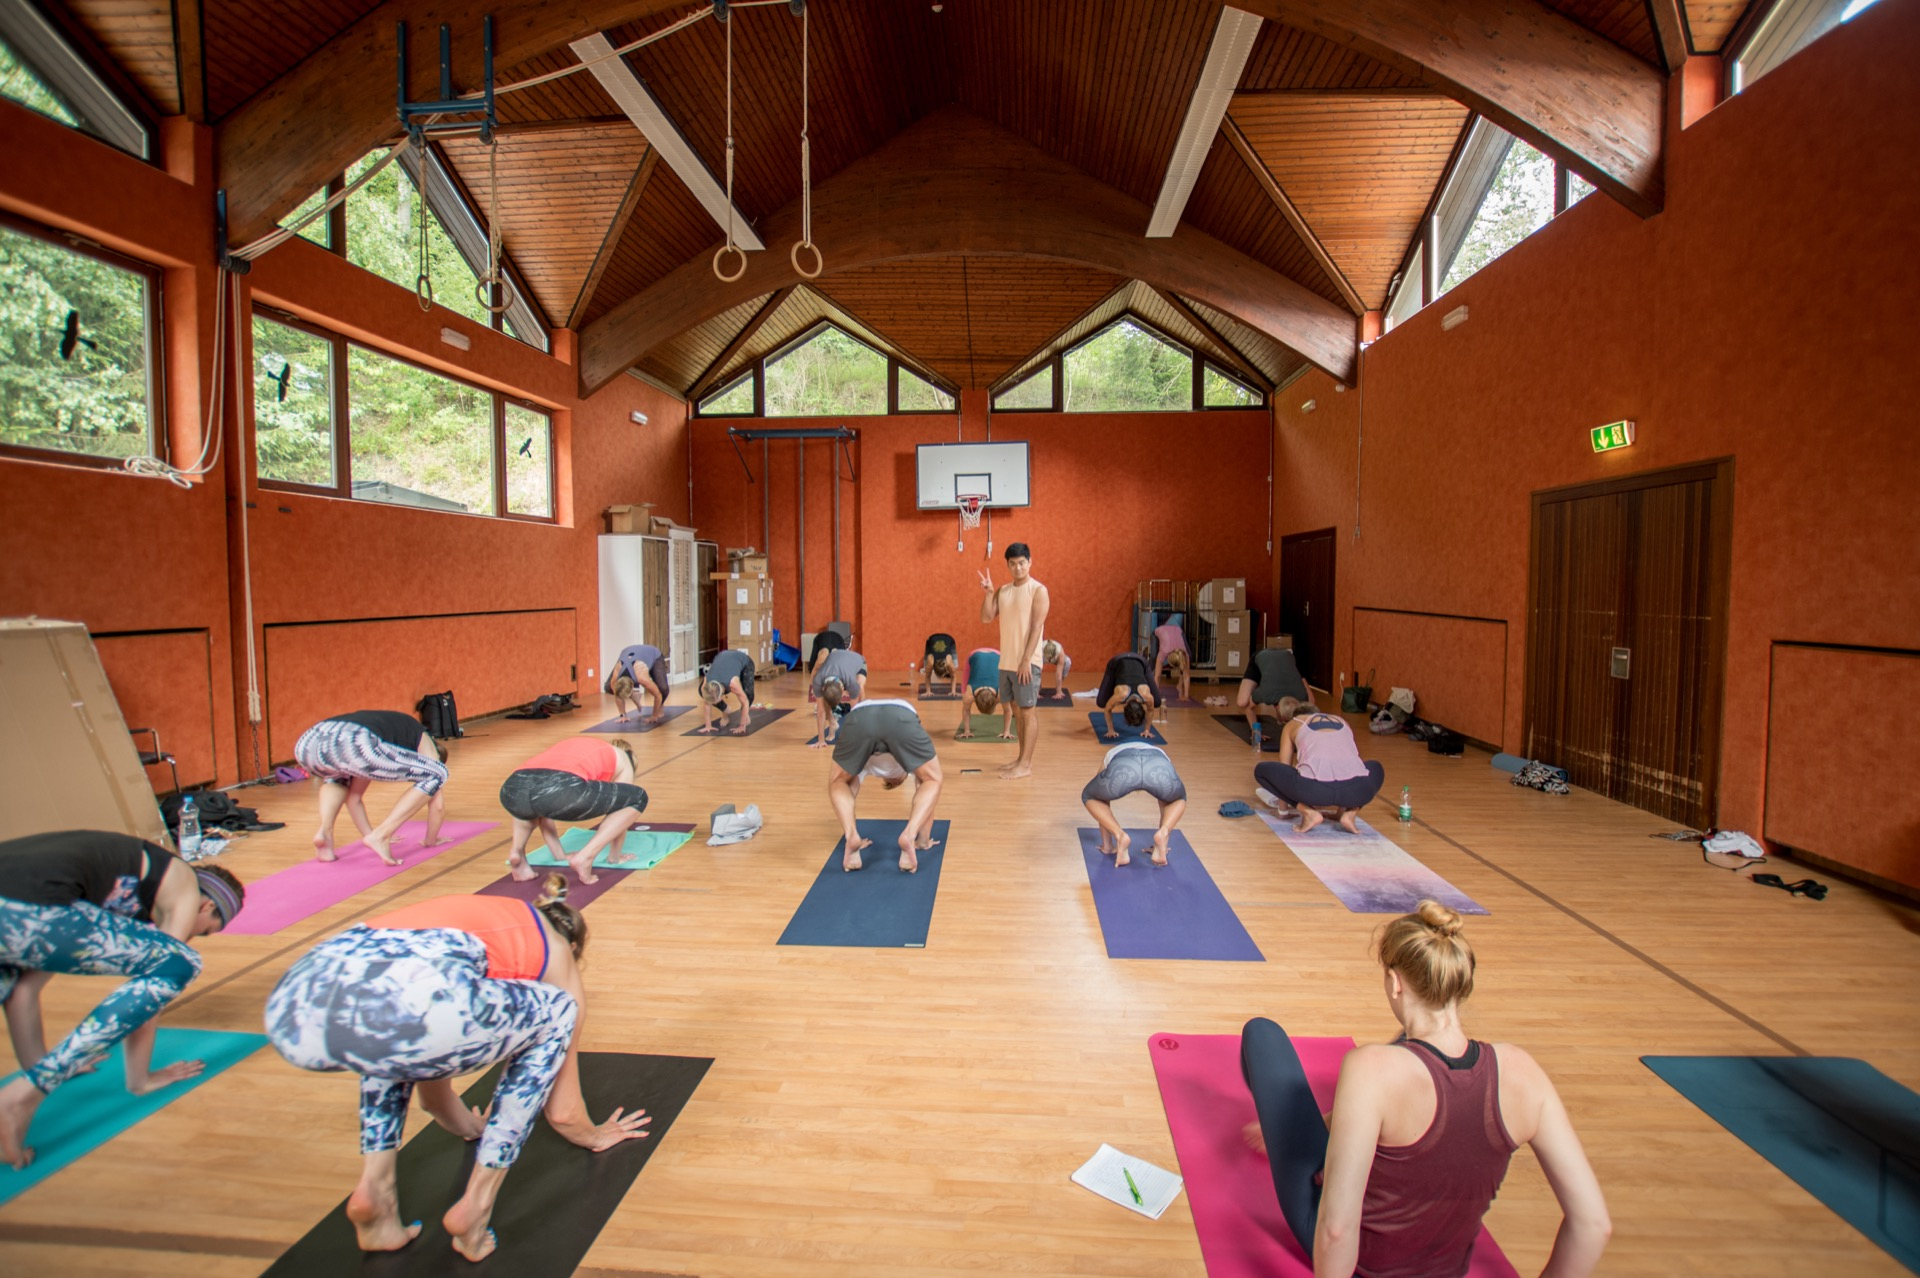 Hie-Kim-Friends-2019-Yoga-Retreat-Alina-Matis-Photography-178 - Hie Kim Yoga - Yoga Retreat - Yoga Workshops und Reisen